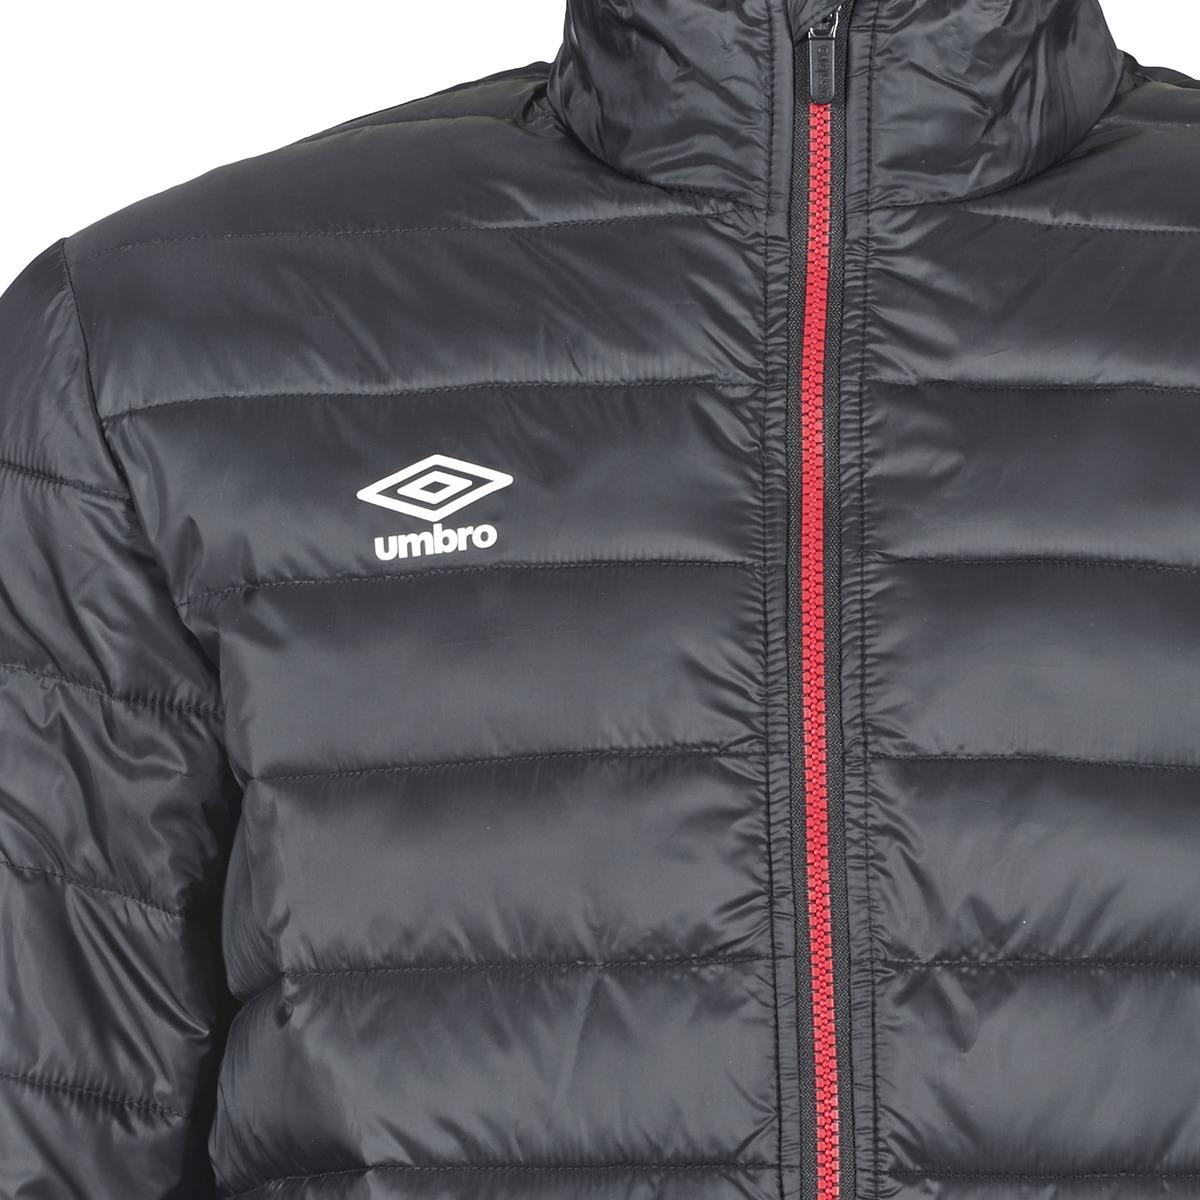 Umbro Training Flat Doudoune Men's Jacket In Black for Men